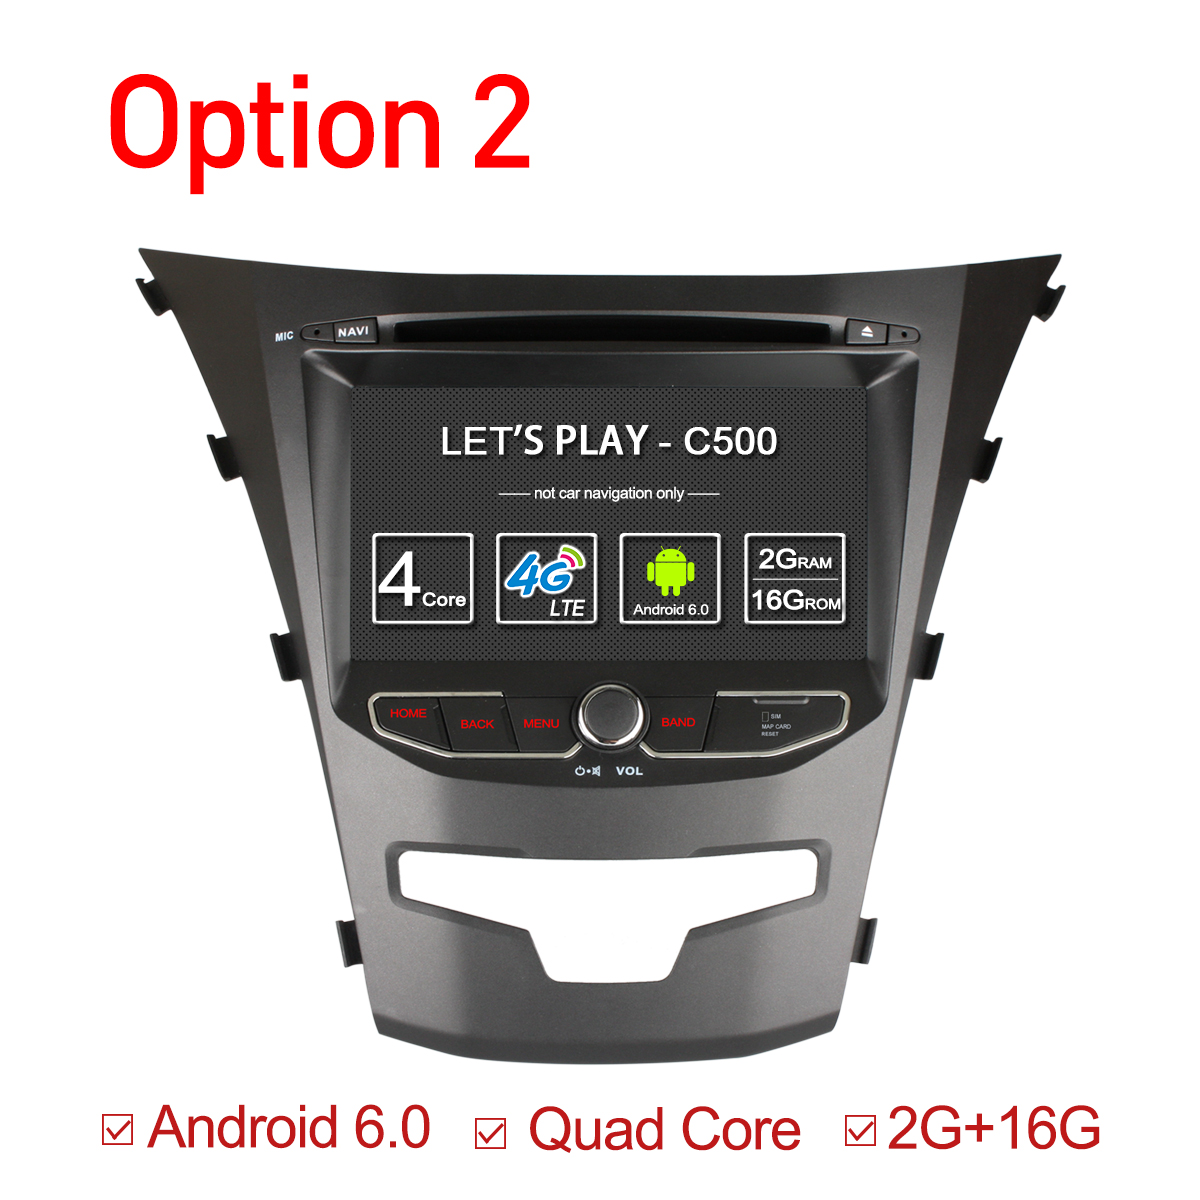 Ownice C500 Octa 8 Core Android 6.0 For Ssangyong Actyon 2014 Korando Quad Core Support 4G SIM LTE Network DAB+ 2GB RAM 32GB ROM